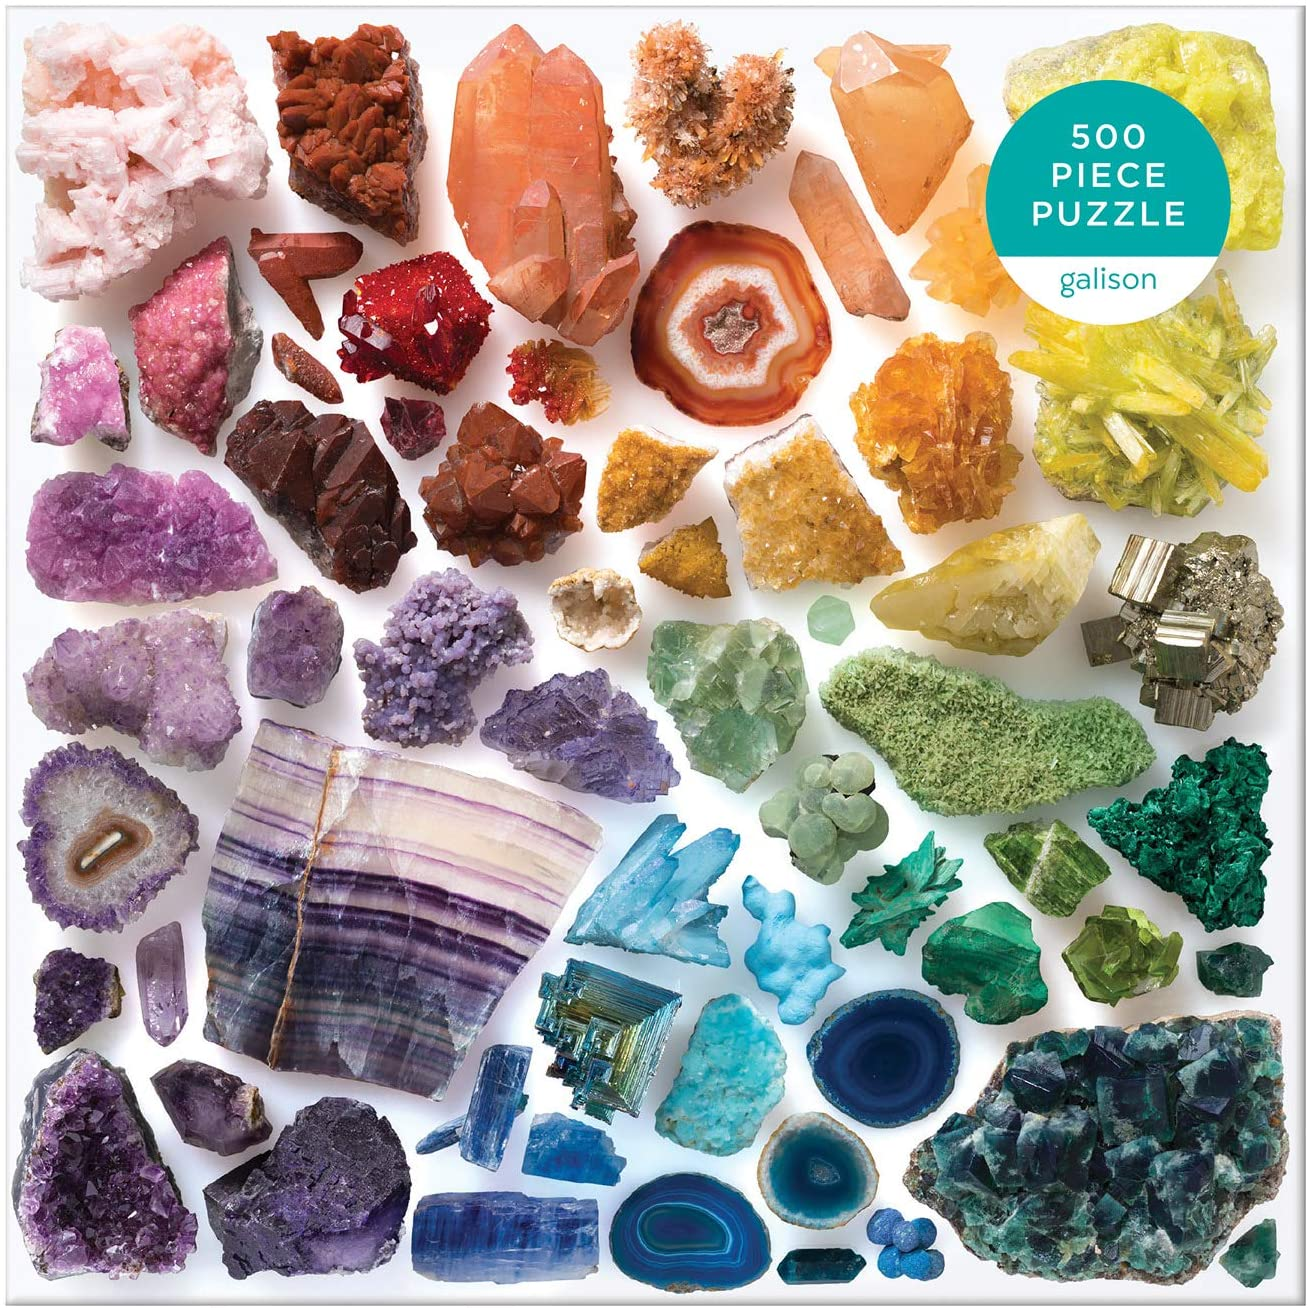 rainbow-crystals-500-piece-puzzle-Main-image